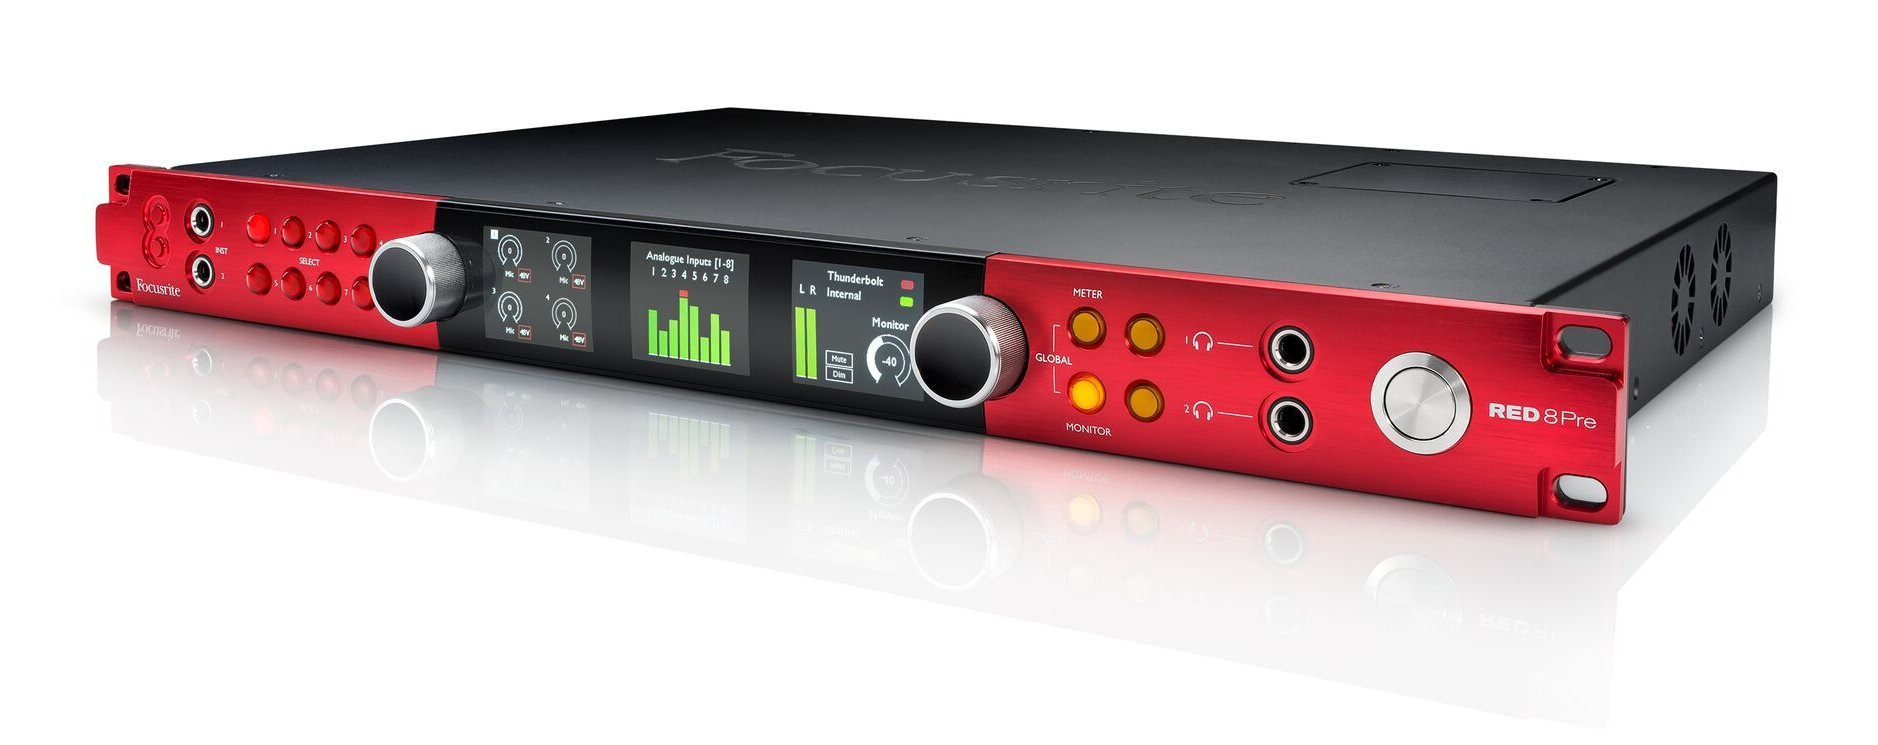 64 In / 64 Out Thunderbolt 2 Audio Interface, Dante Network Audio Connectivity